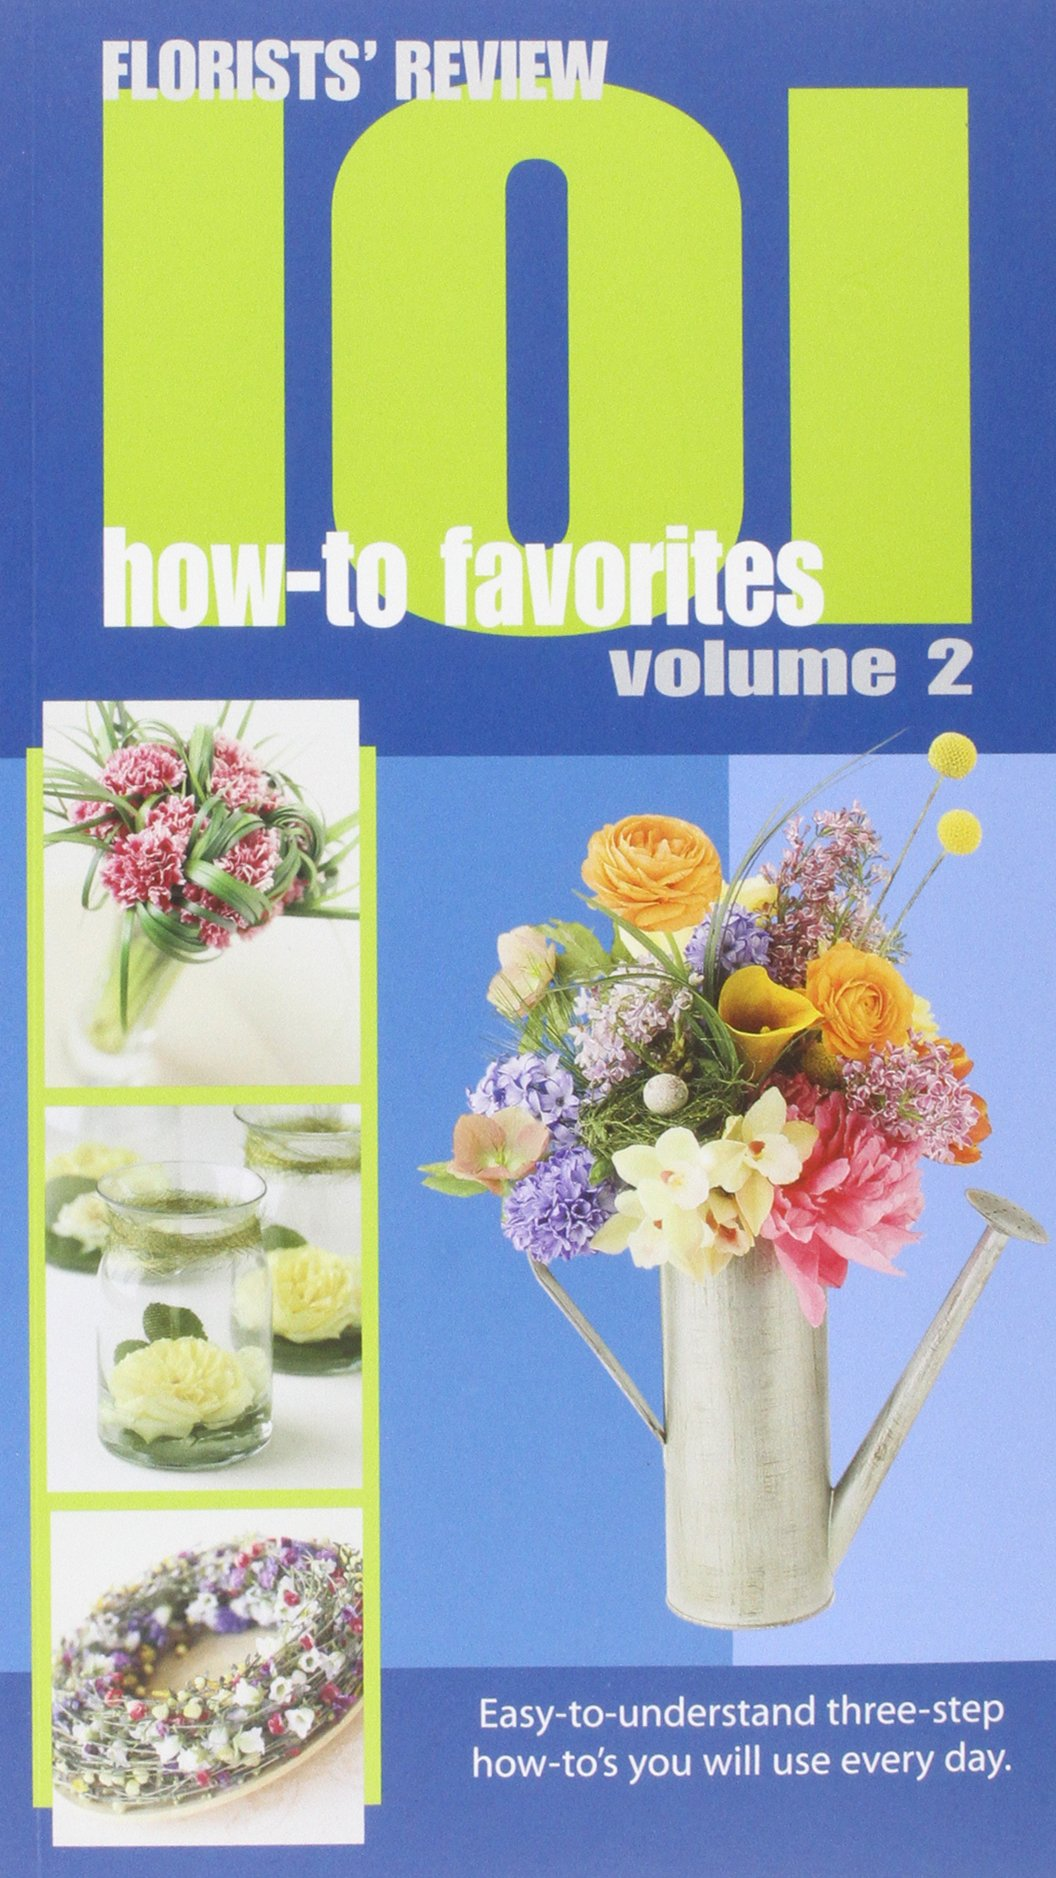 Florists' Review 101 How-To Favorites Volume 2